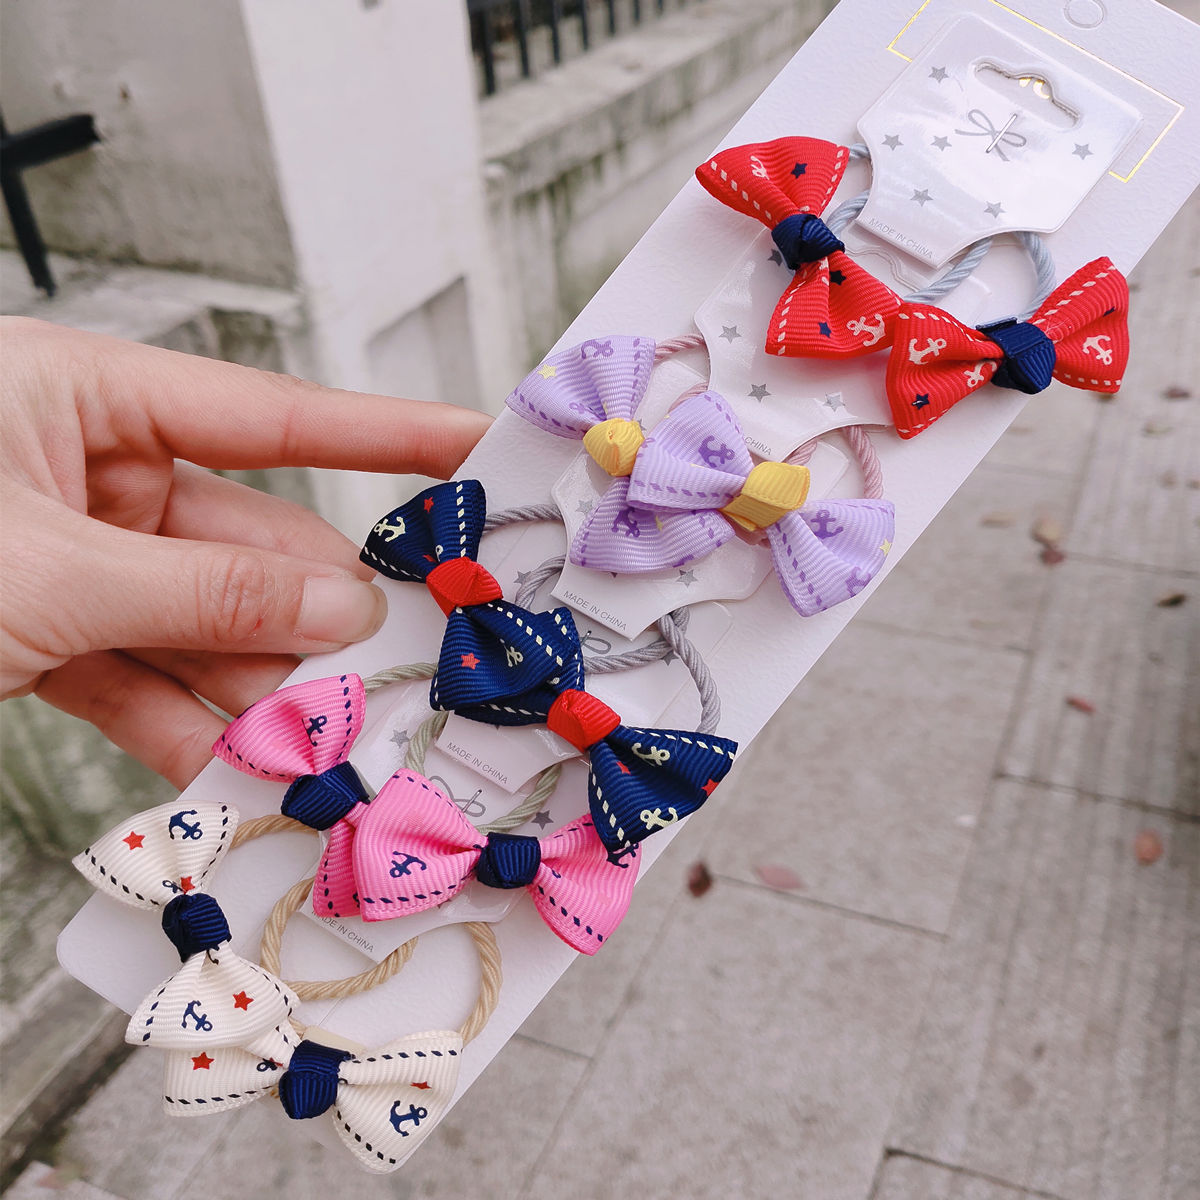 1 set New Cute Ribbon Flowers Scrunchies Children Girls Kids Elastic Hair Rubber Band Accessories Tie Hair Ring Rope Holder